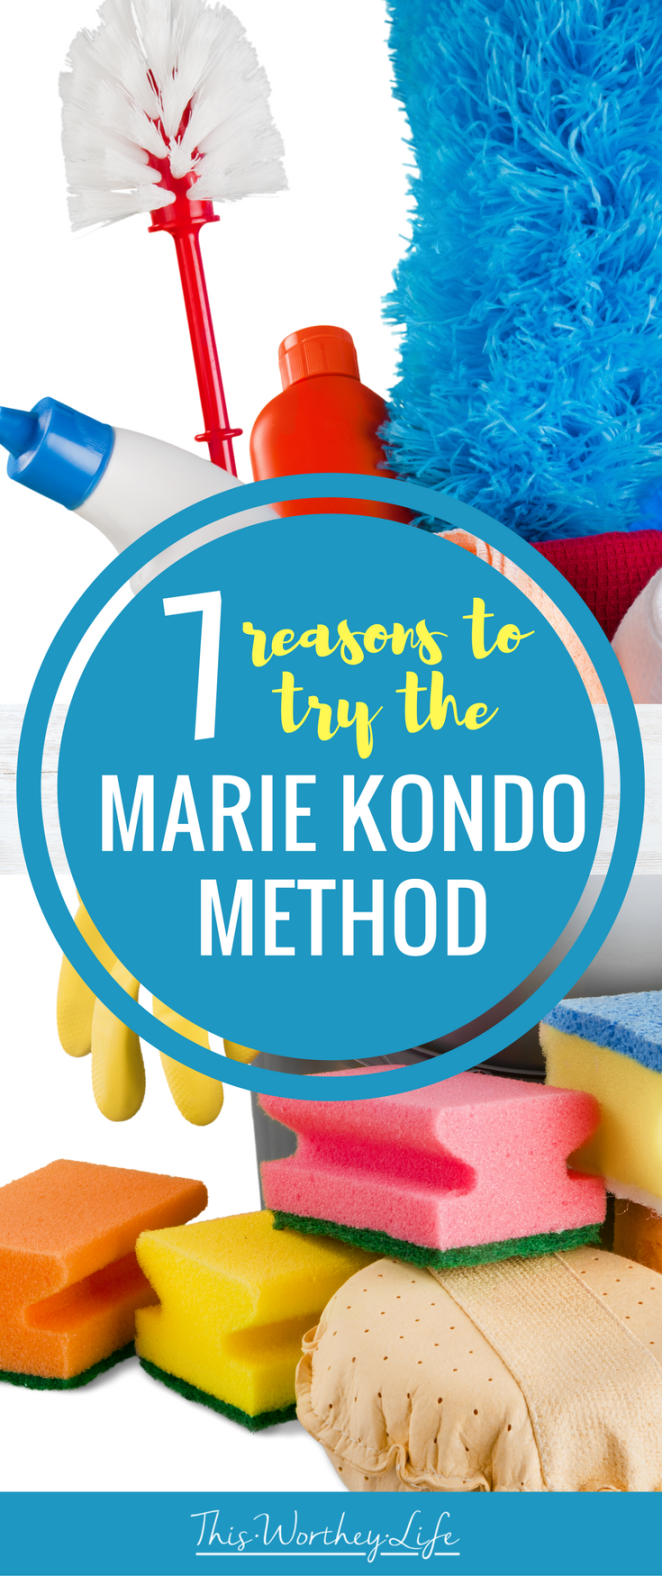 You may have heard about the Marie Kondo Method around the internet, and maybe even tried it. If not, I'm sharing 7 reasons to try the Marie Kondo Method and how this way of cleaning and organizing will be a game-changer.